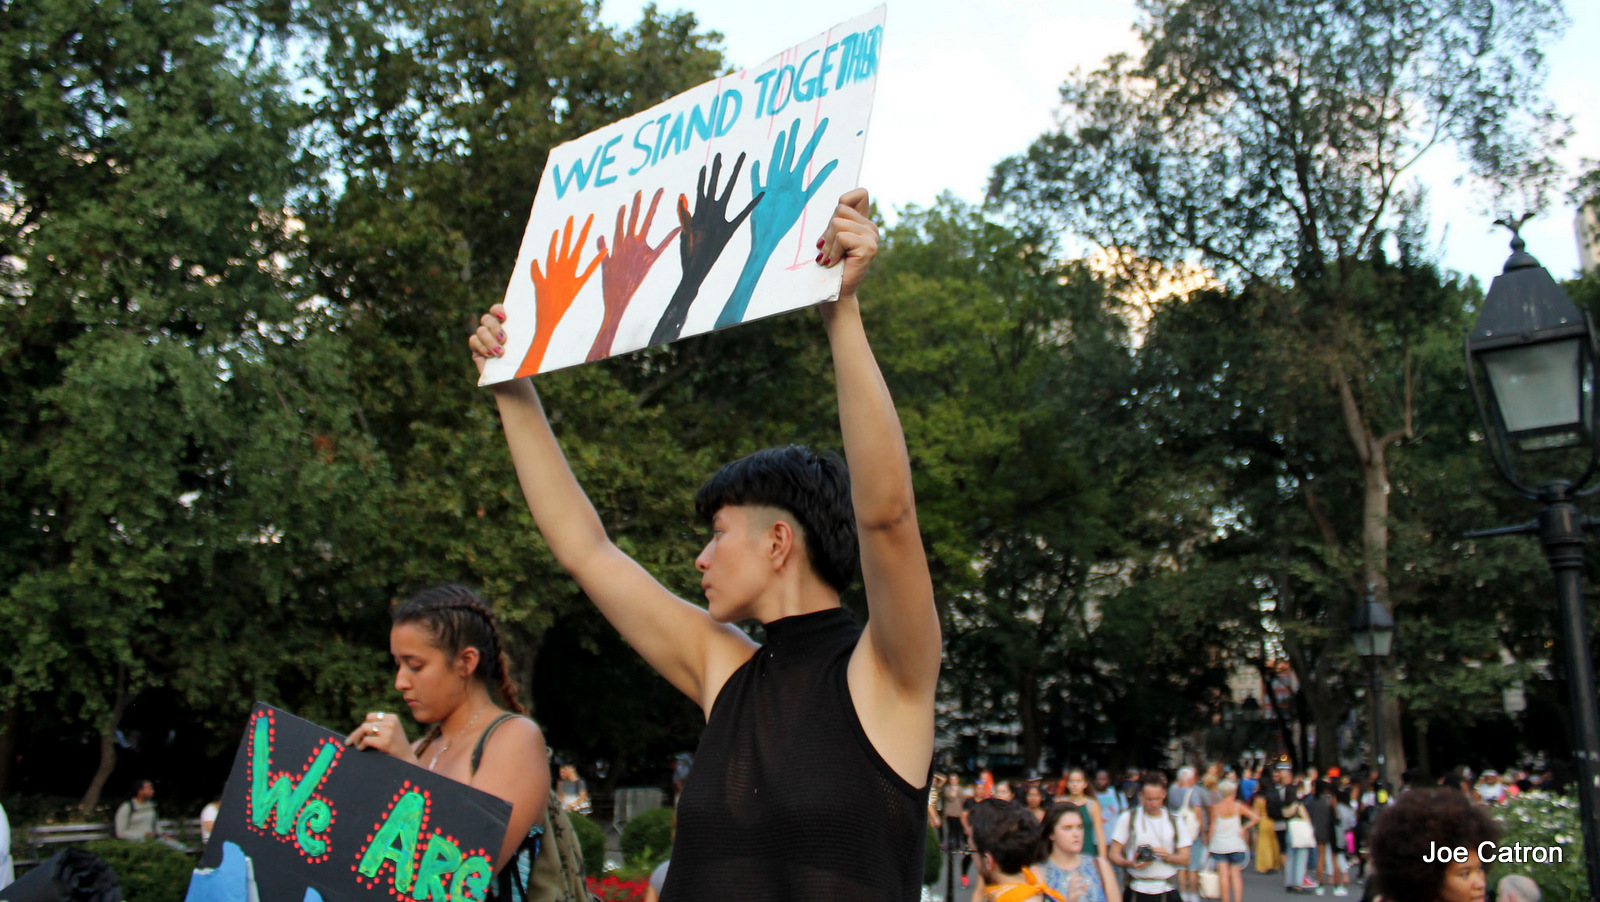 Hundreds rally Washington Square Park in New York to support Native land and water defenders opposing the Dakota Access Pipeline in Standing Rock, North Dakota on Friday. September 9, 2016.